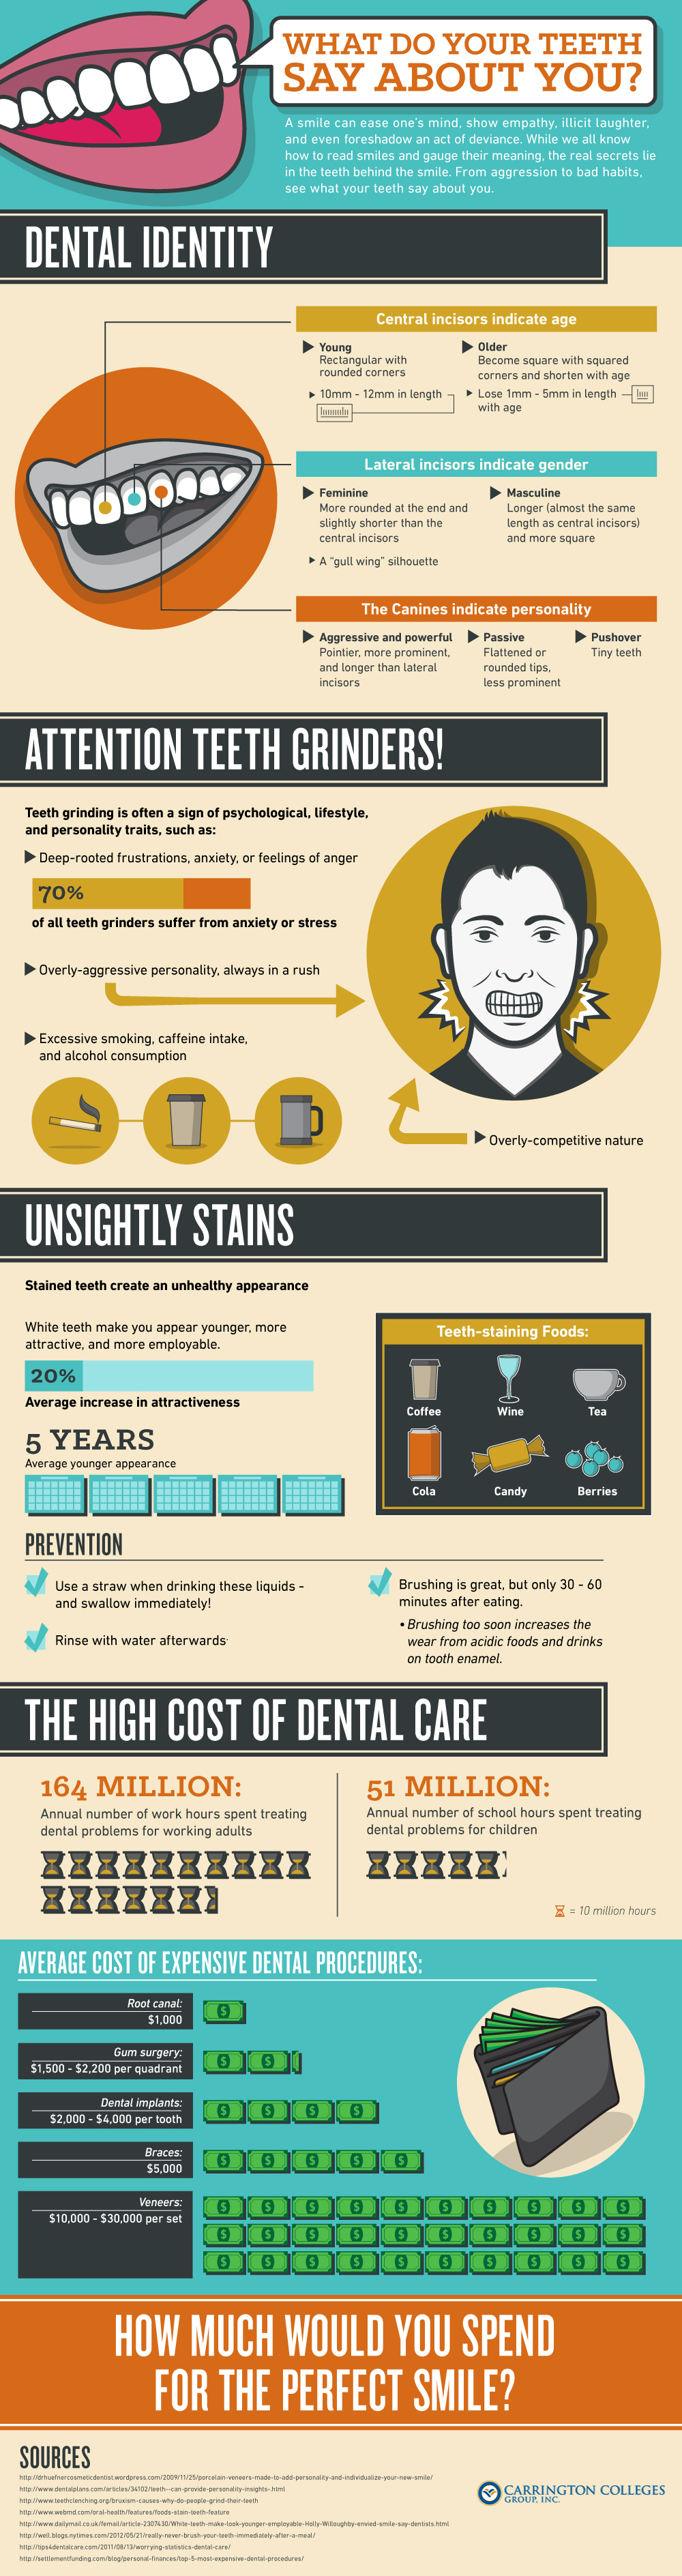 What Do Your Teeth Say About You? | 6th Ave Periodontics